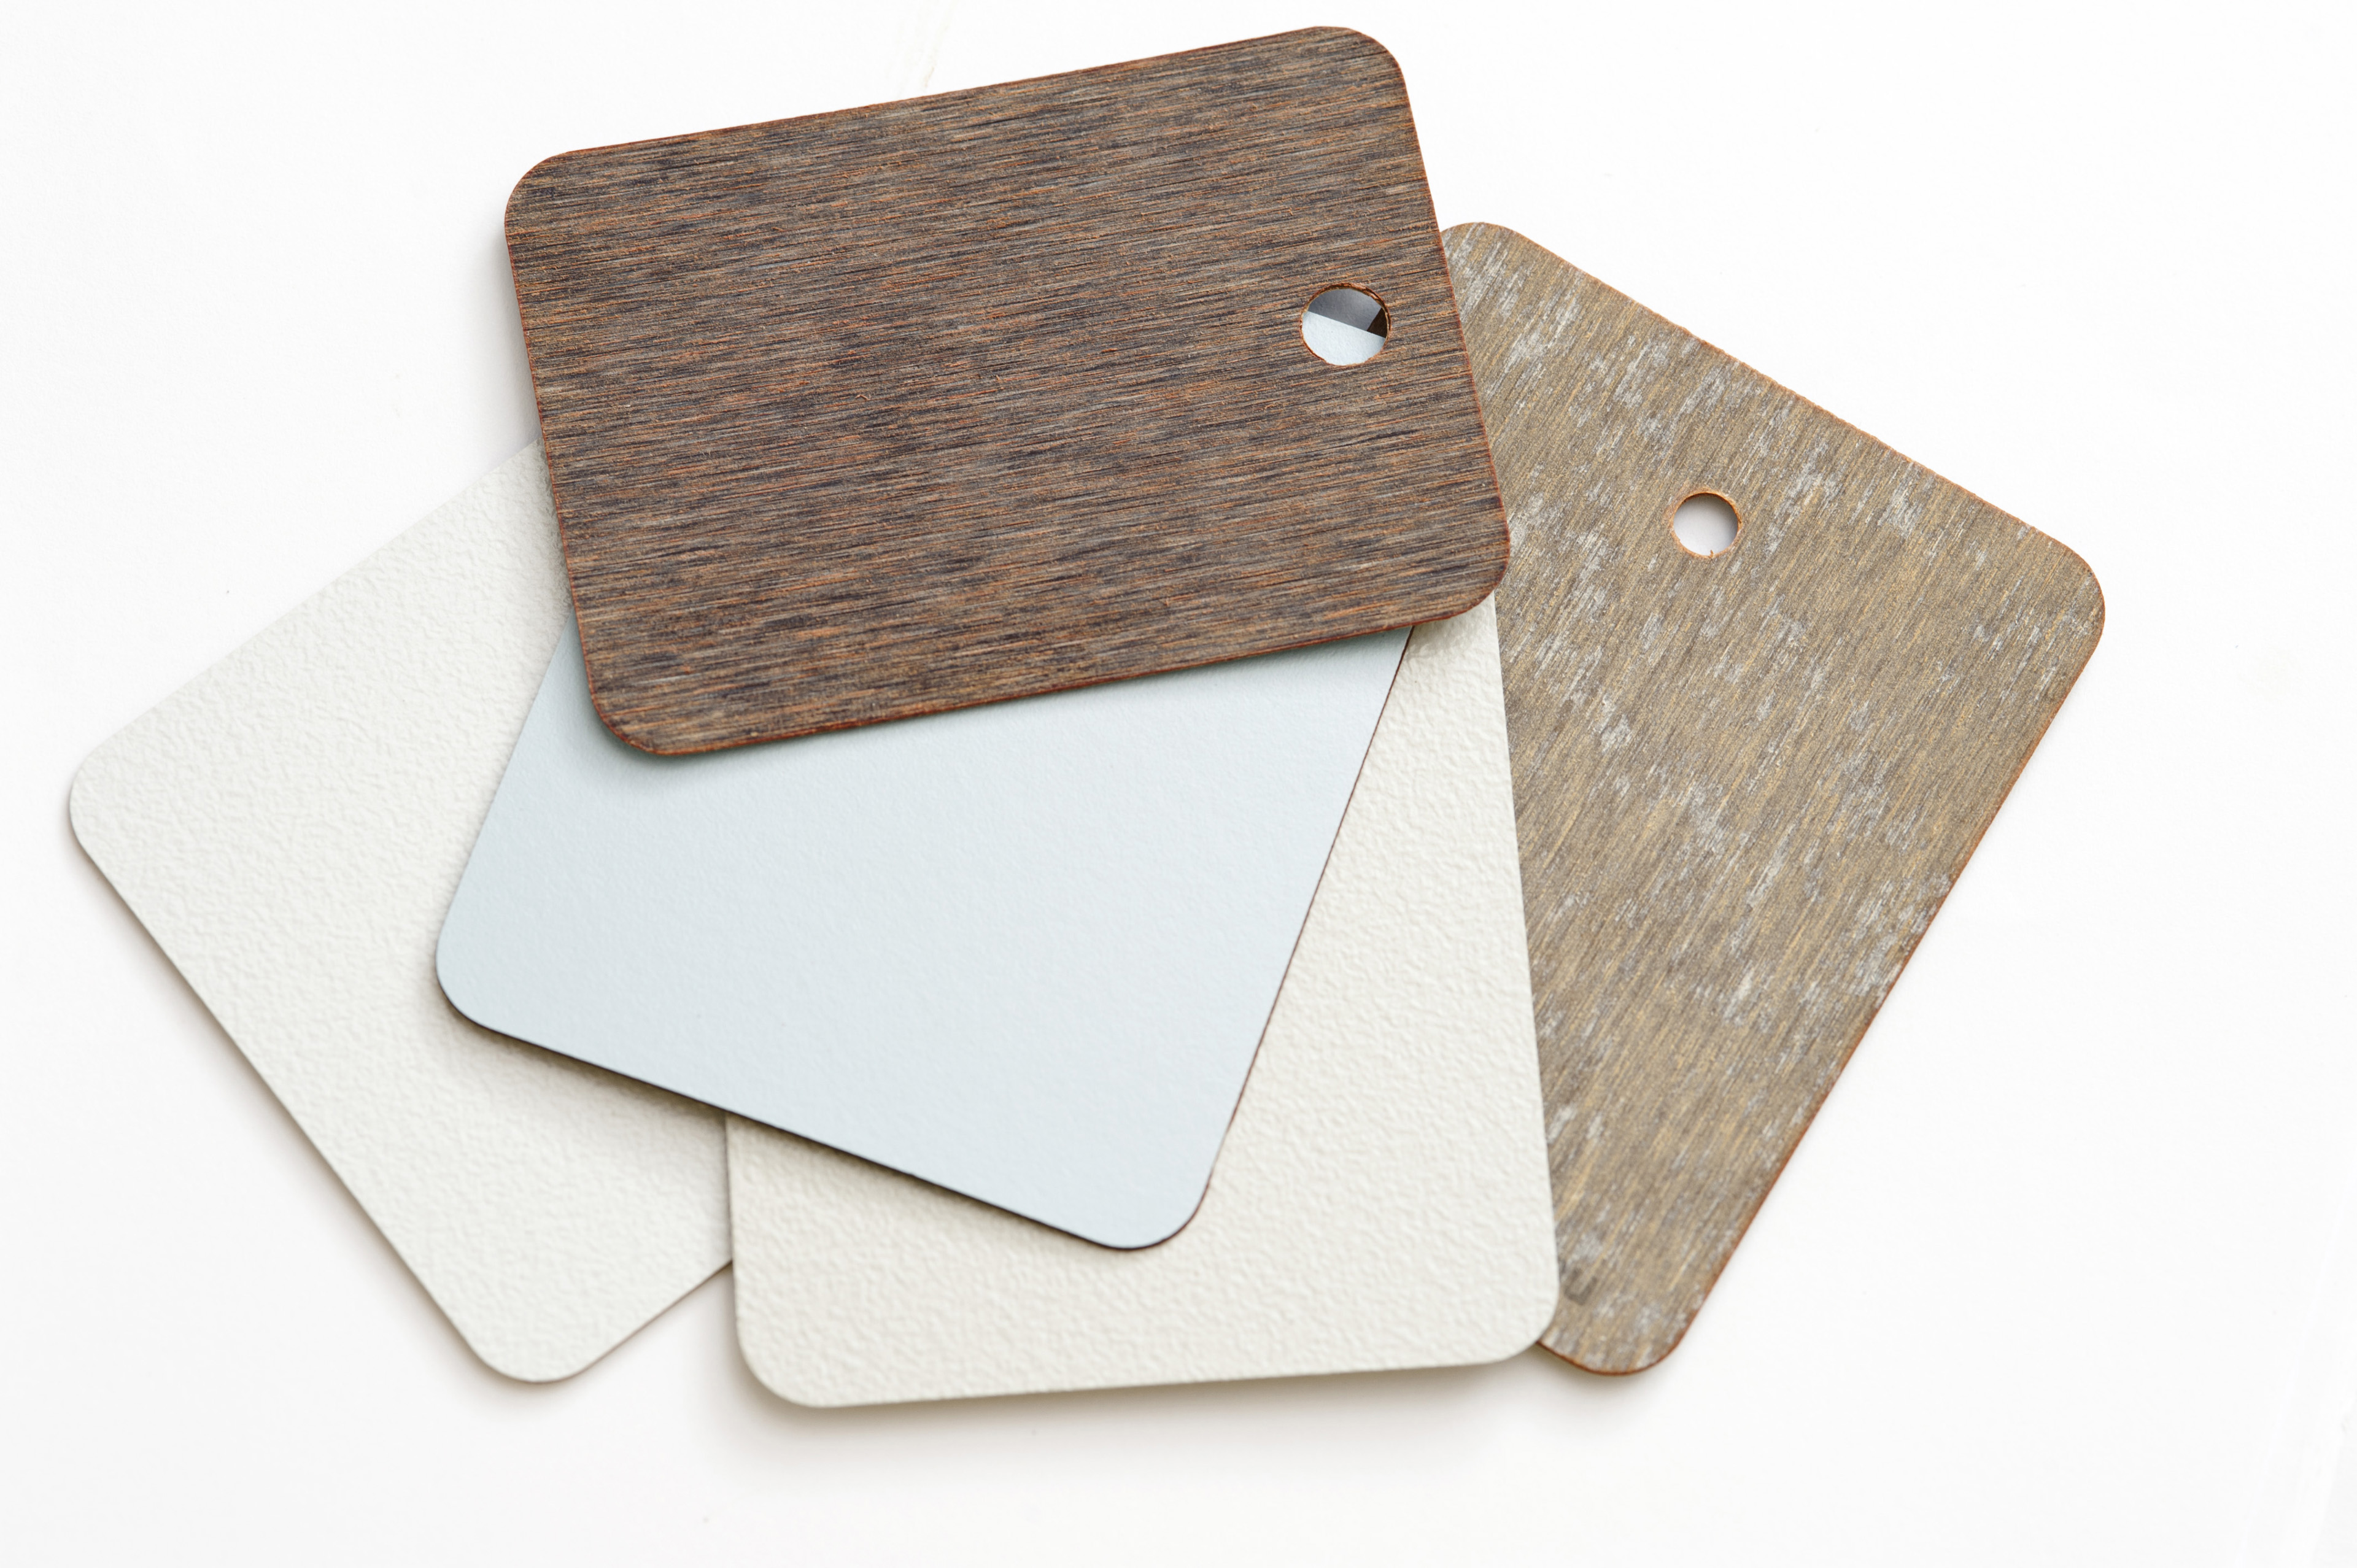 Pile of different neutral colored laminate swatches for interior coverings and surfaces in a house lying on top of each other on a white background